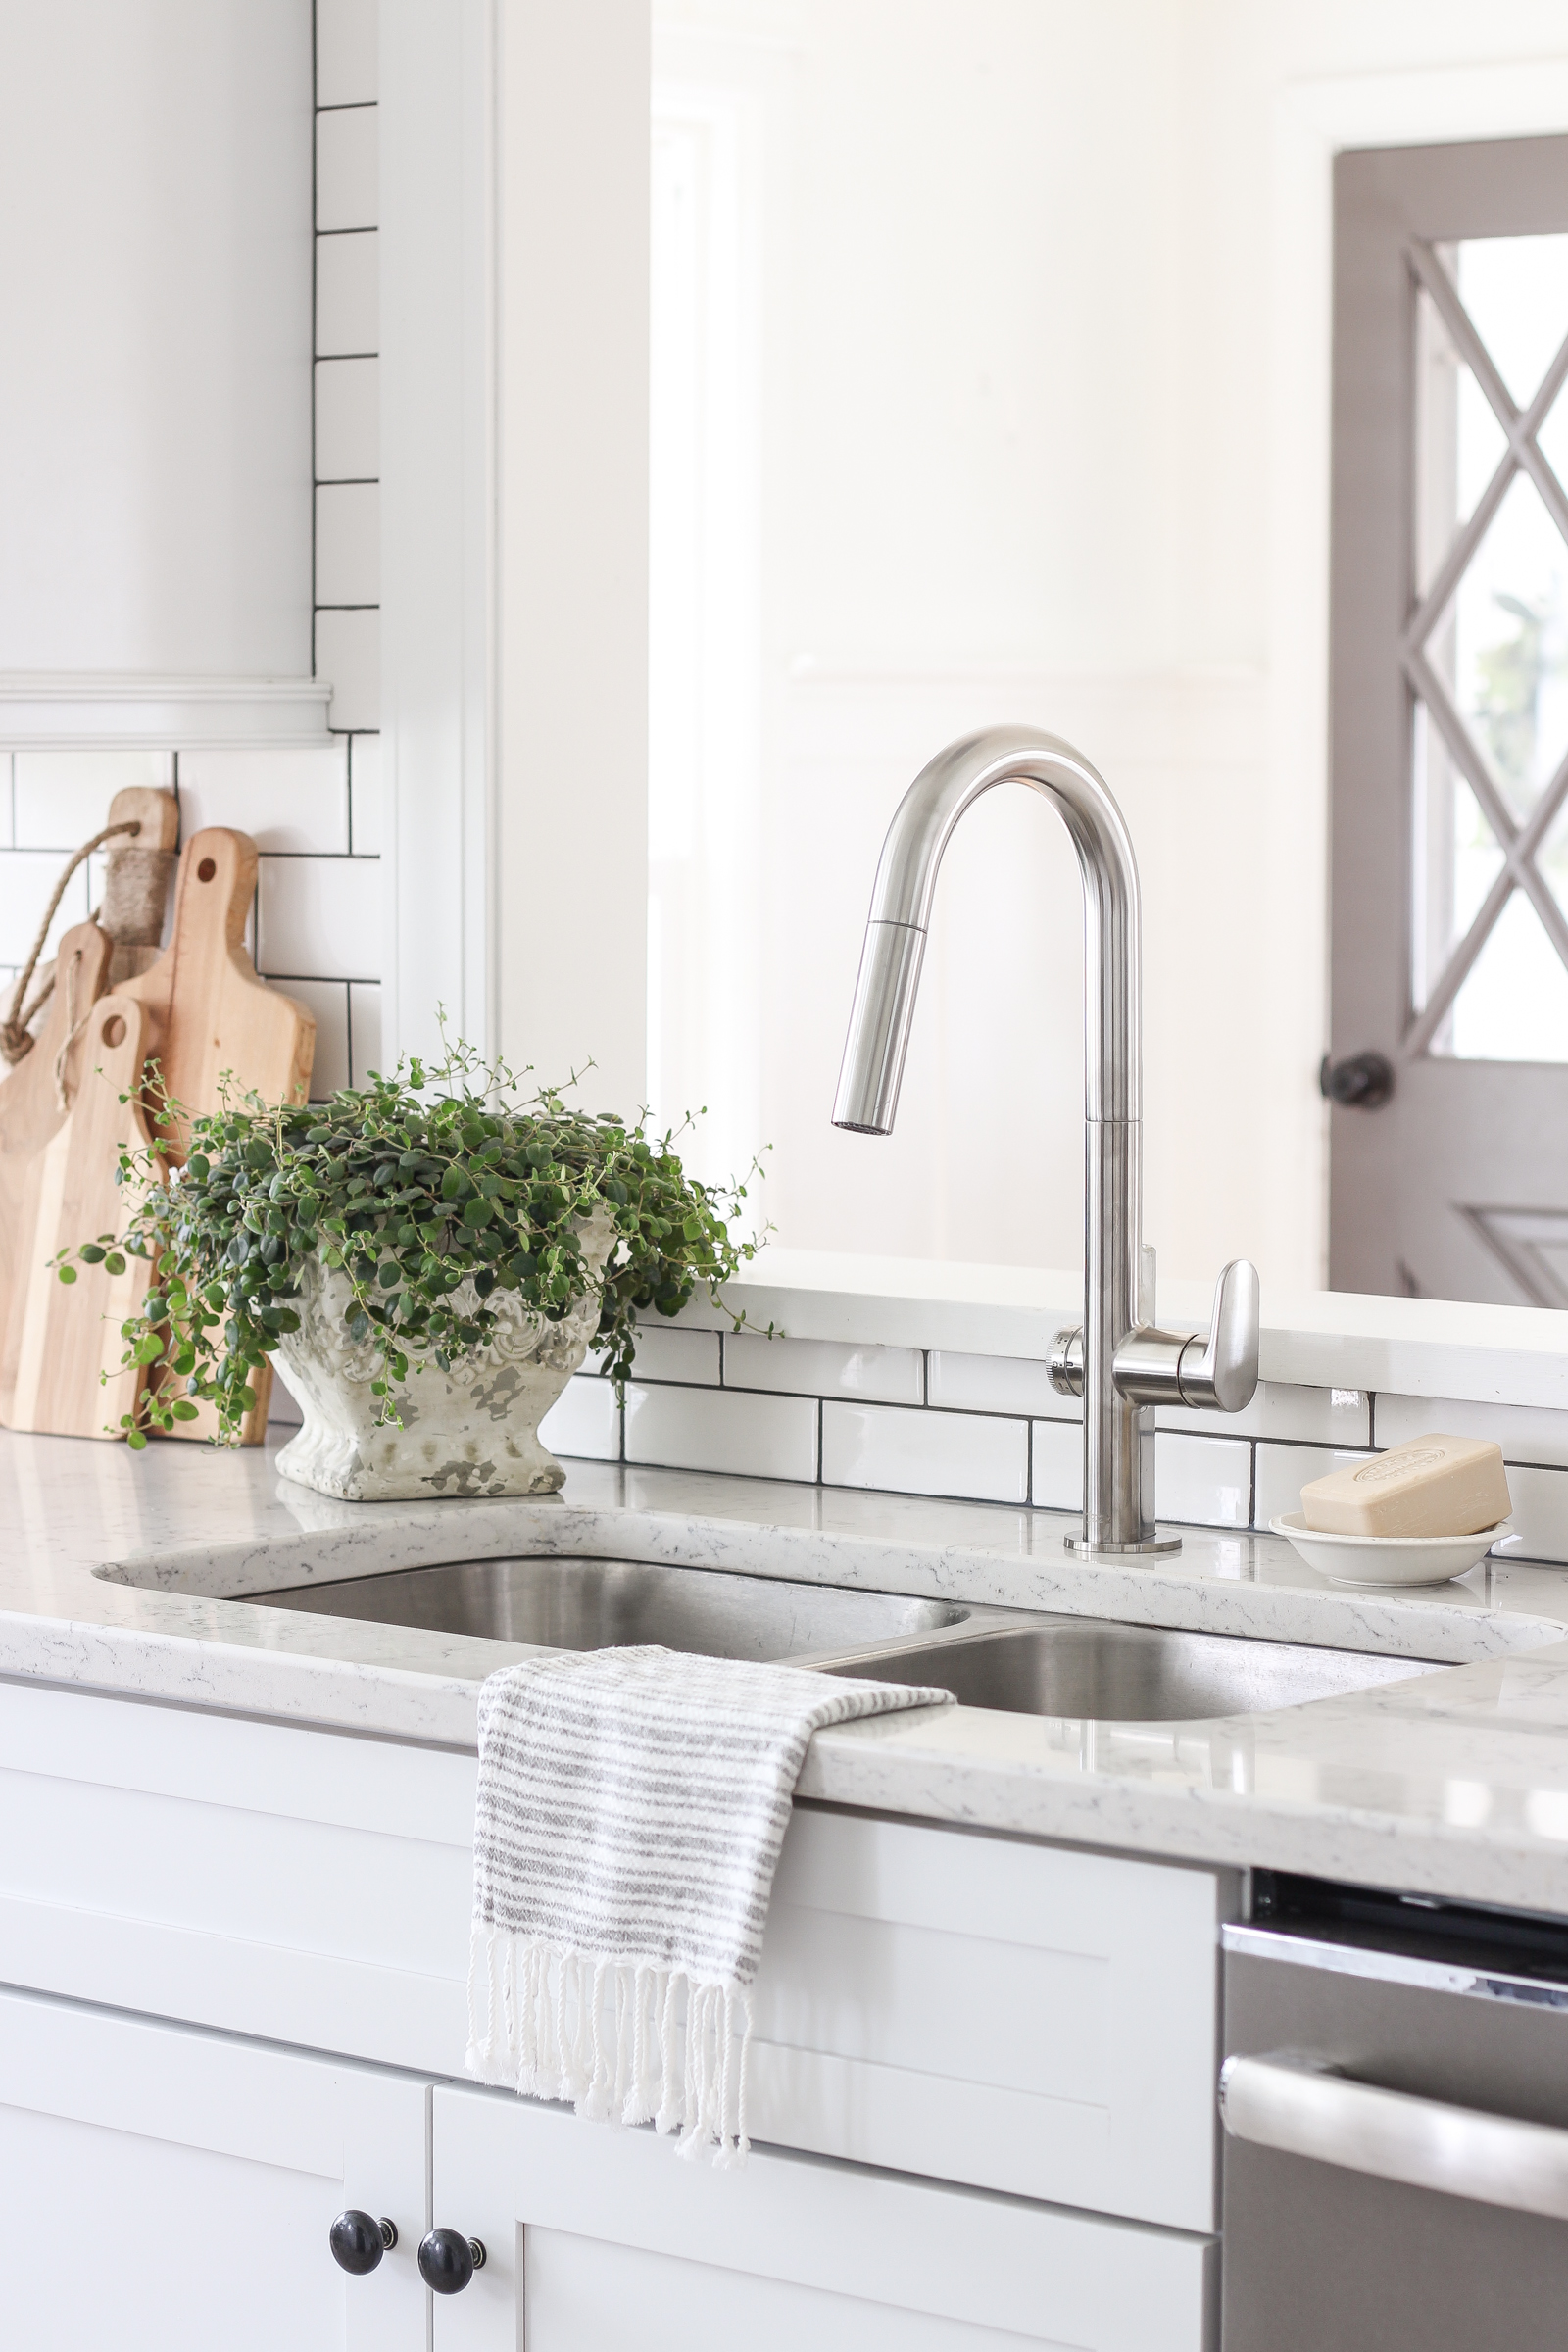 A lovely farmhouse kitchen with a faucet as functional as it is beautiful